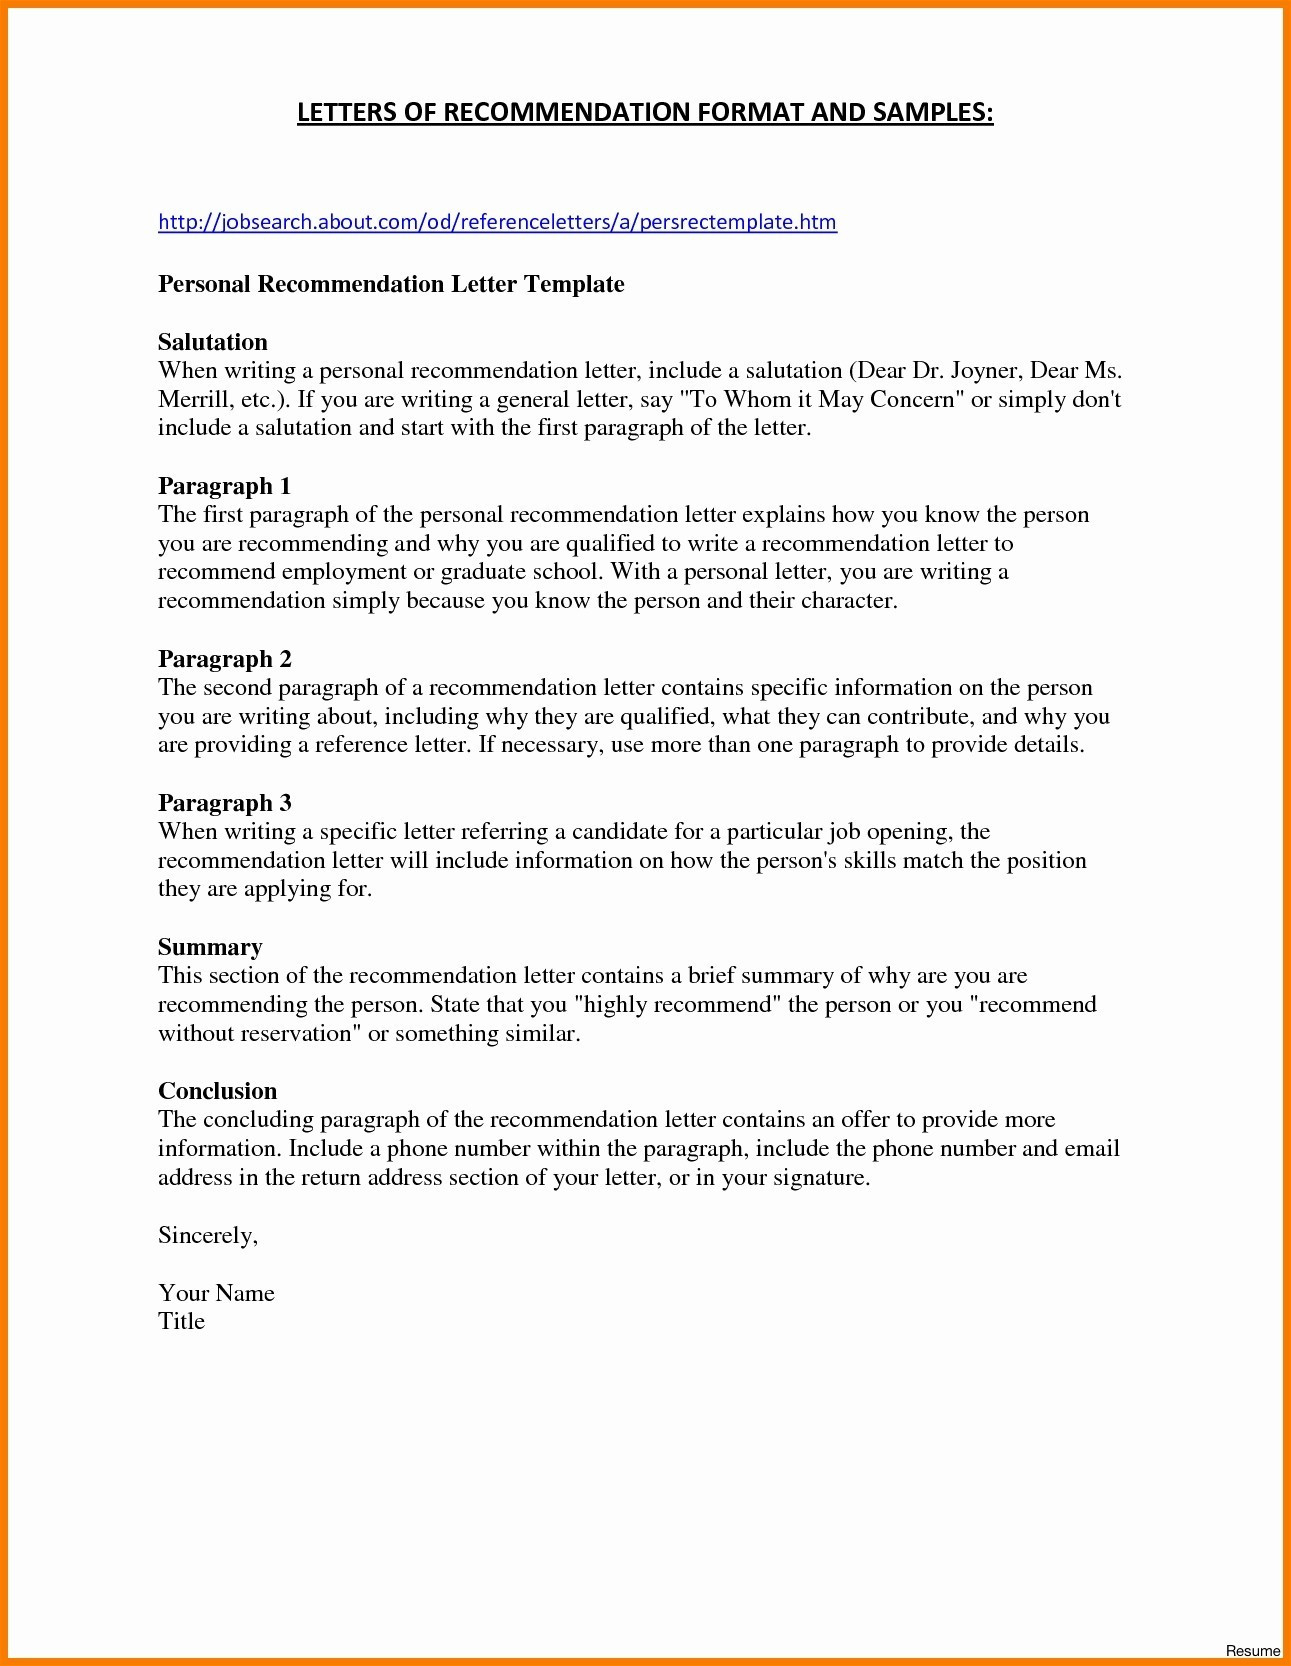 Is top Resume Worth It - Consignment Letter Template 2018 Professional Post Your Resume